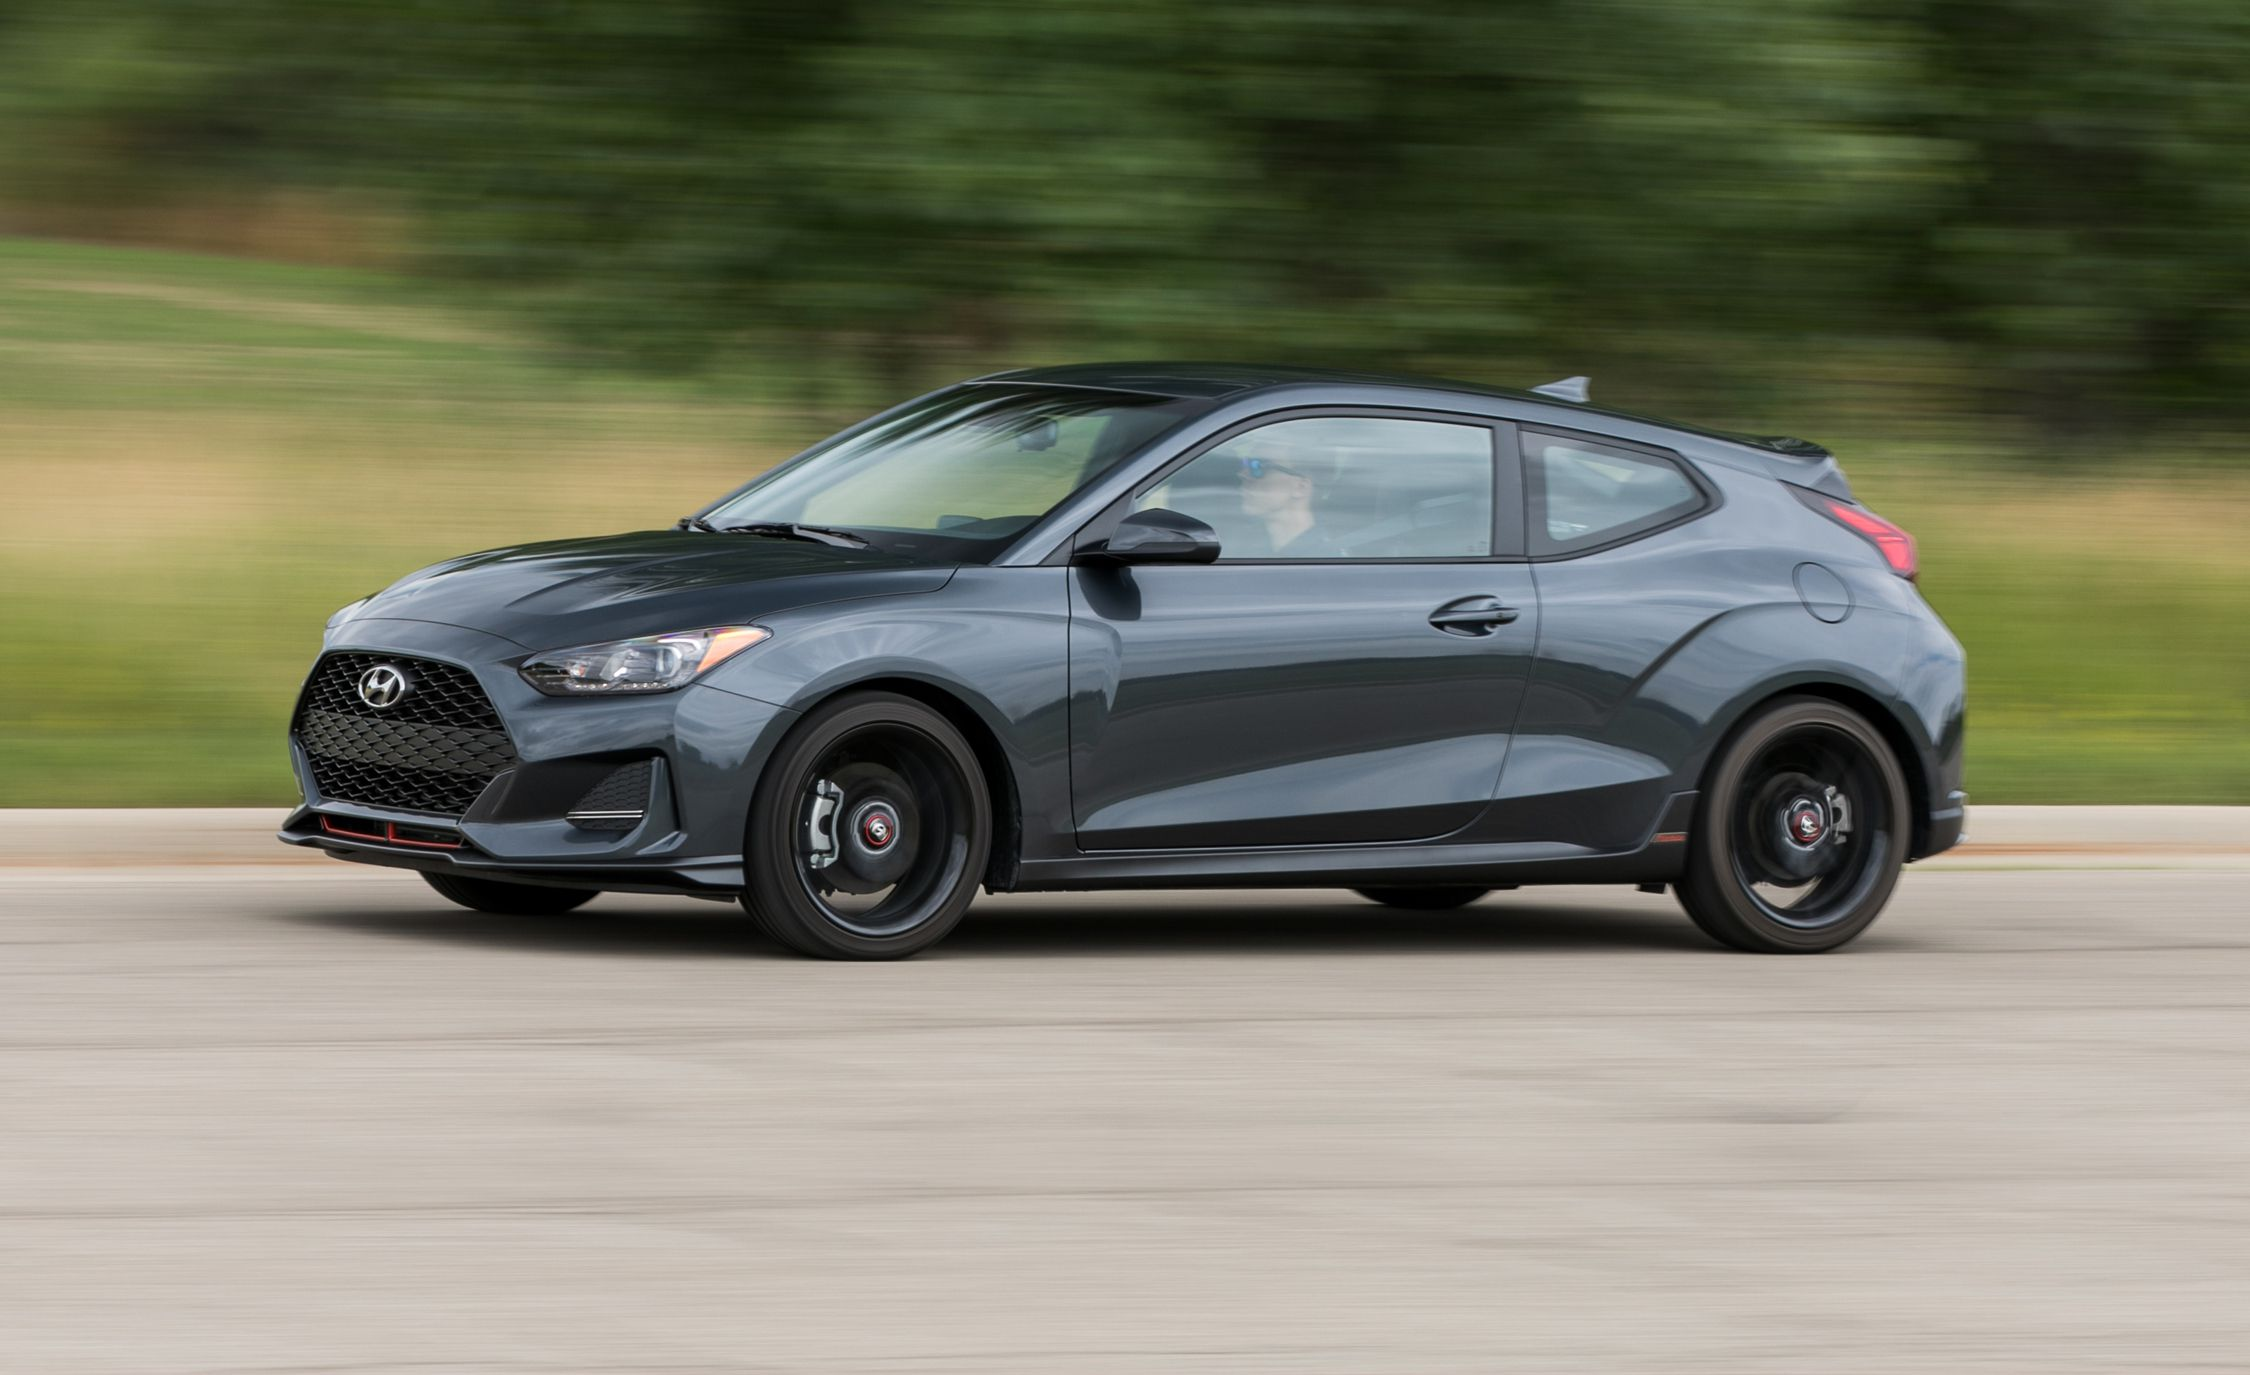 61 New 2019 Hyundai Veloster Turbo Release Date and Concept